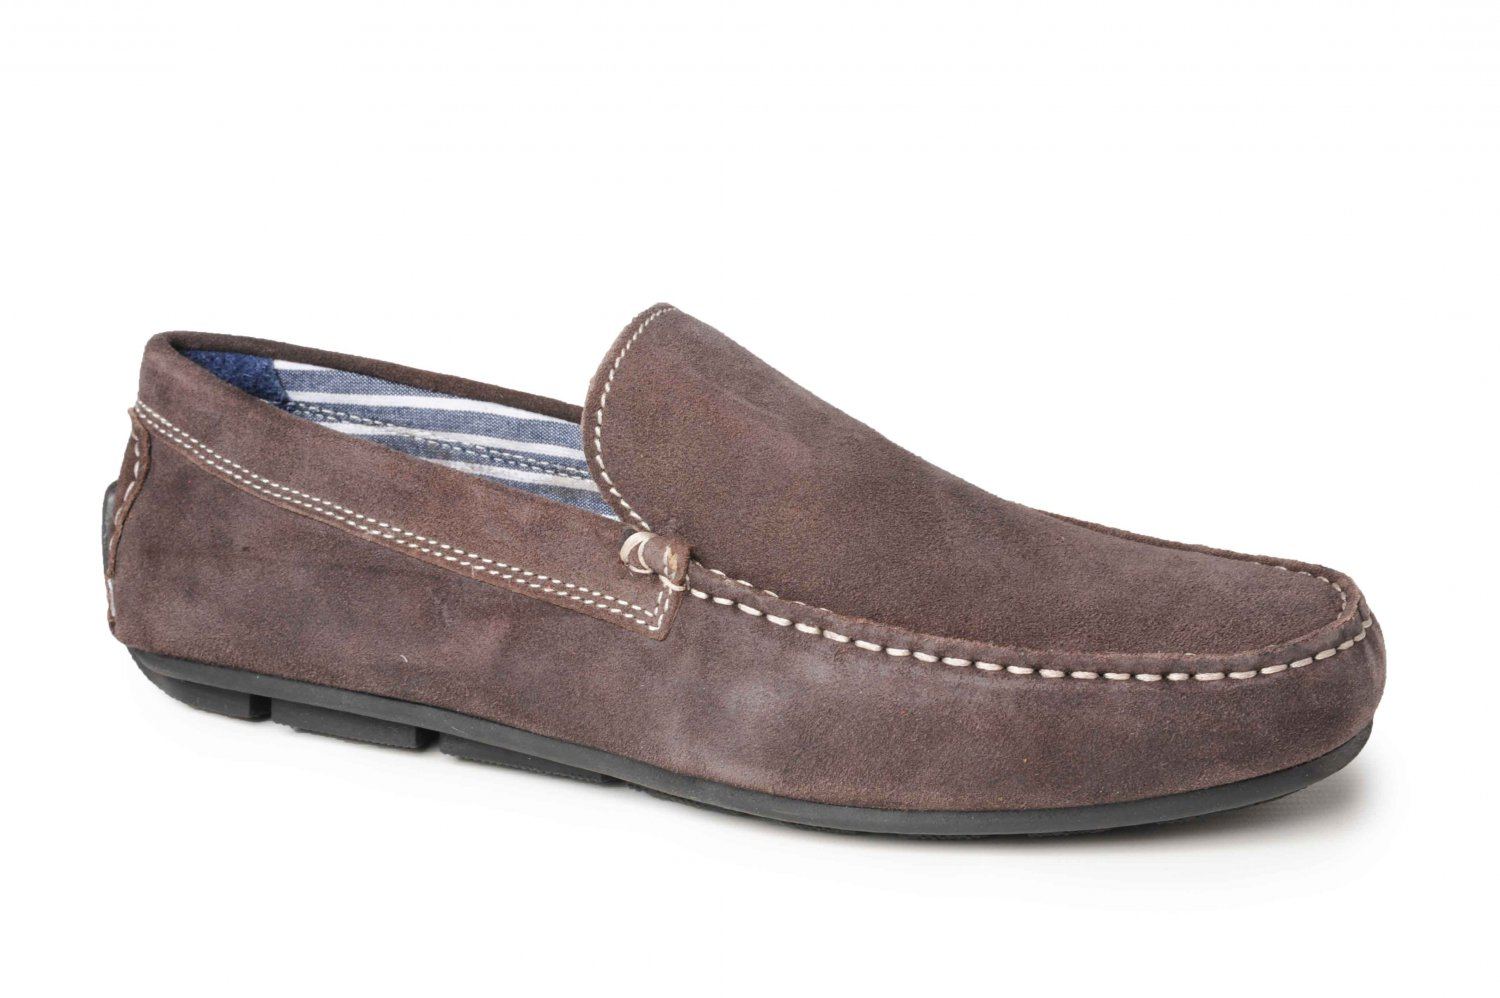 Catesby Men's Suede Leather Moccasin Driving Penny Loafers I Dark Beige